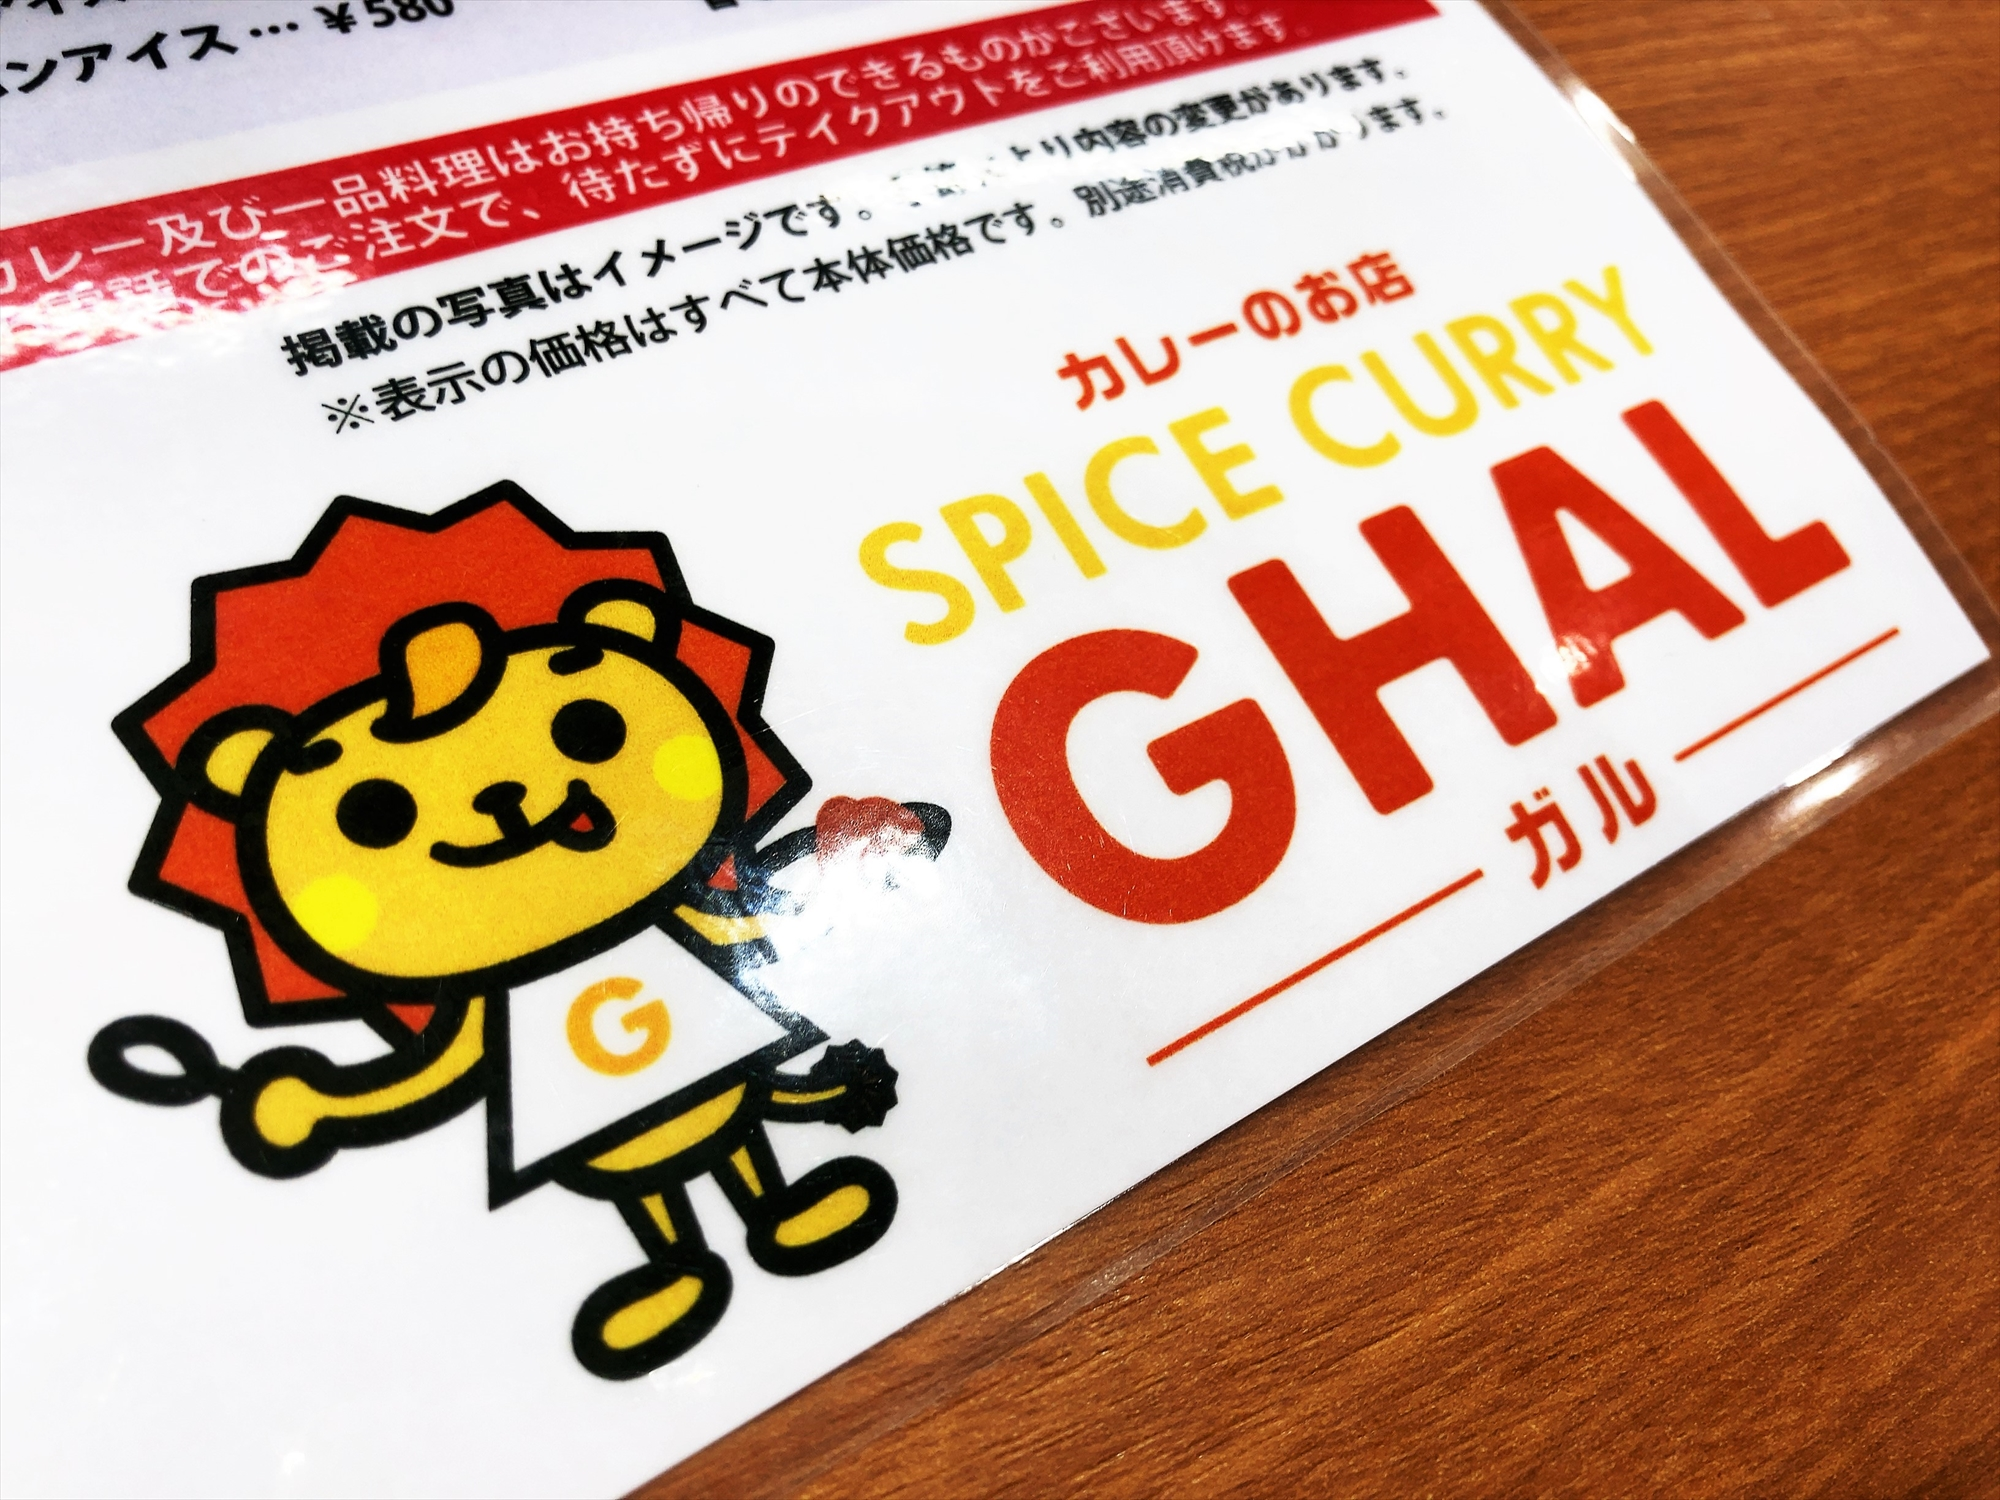 SPICE CURRY GHALのメニュー